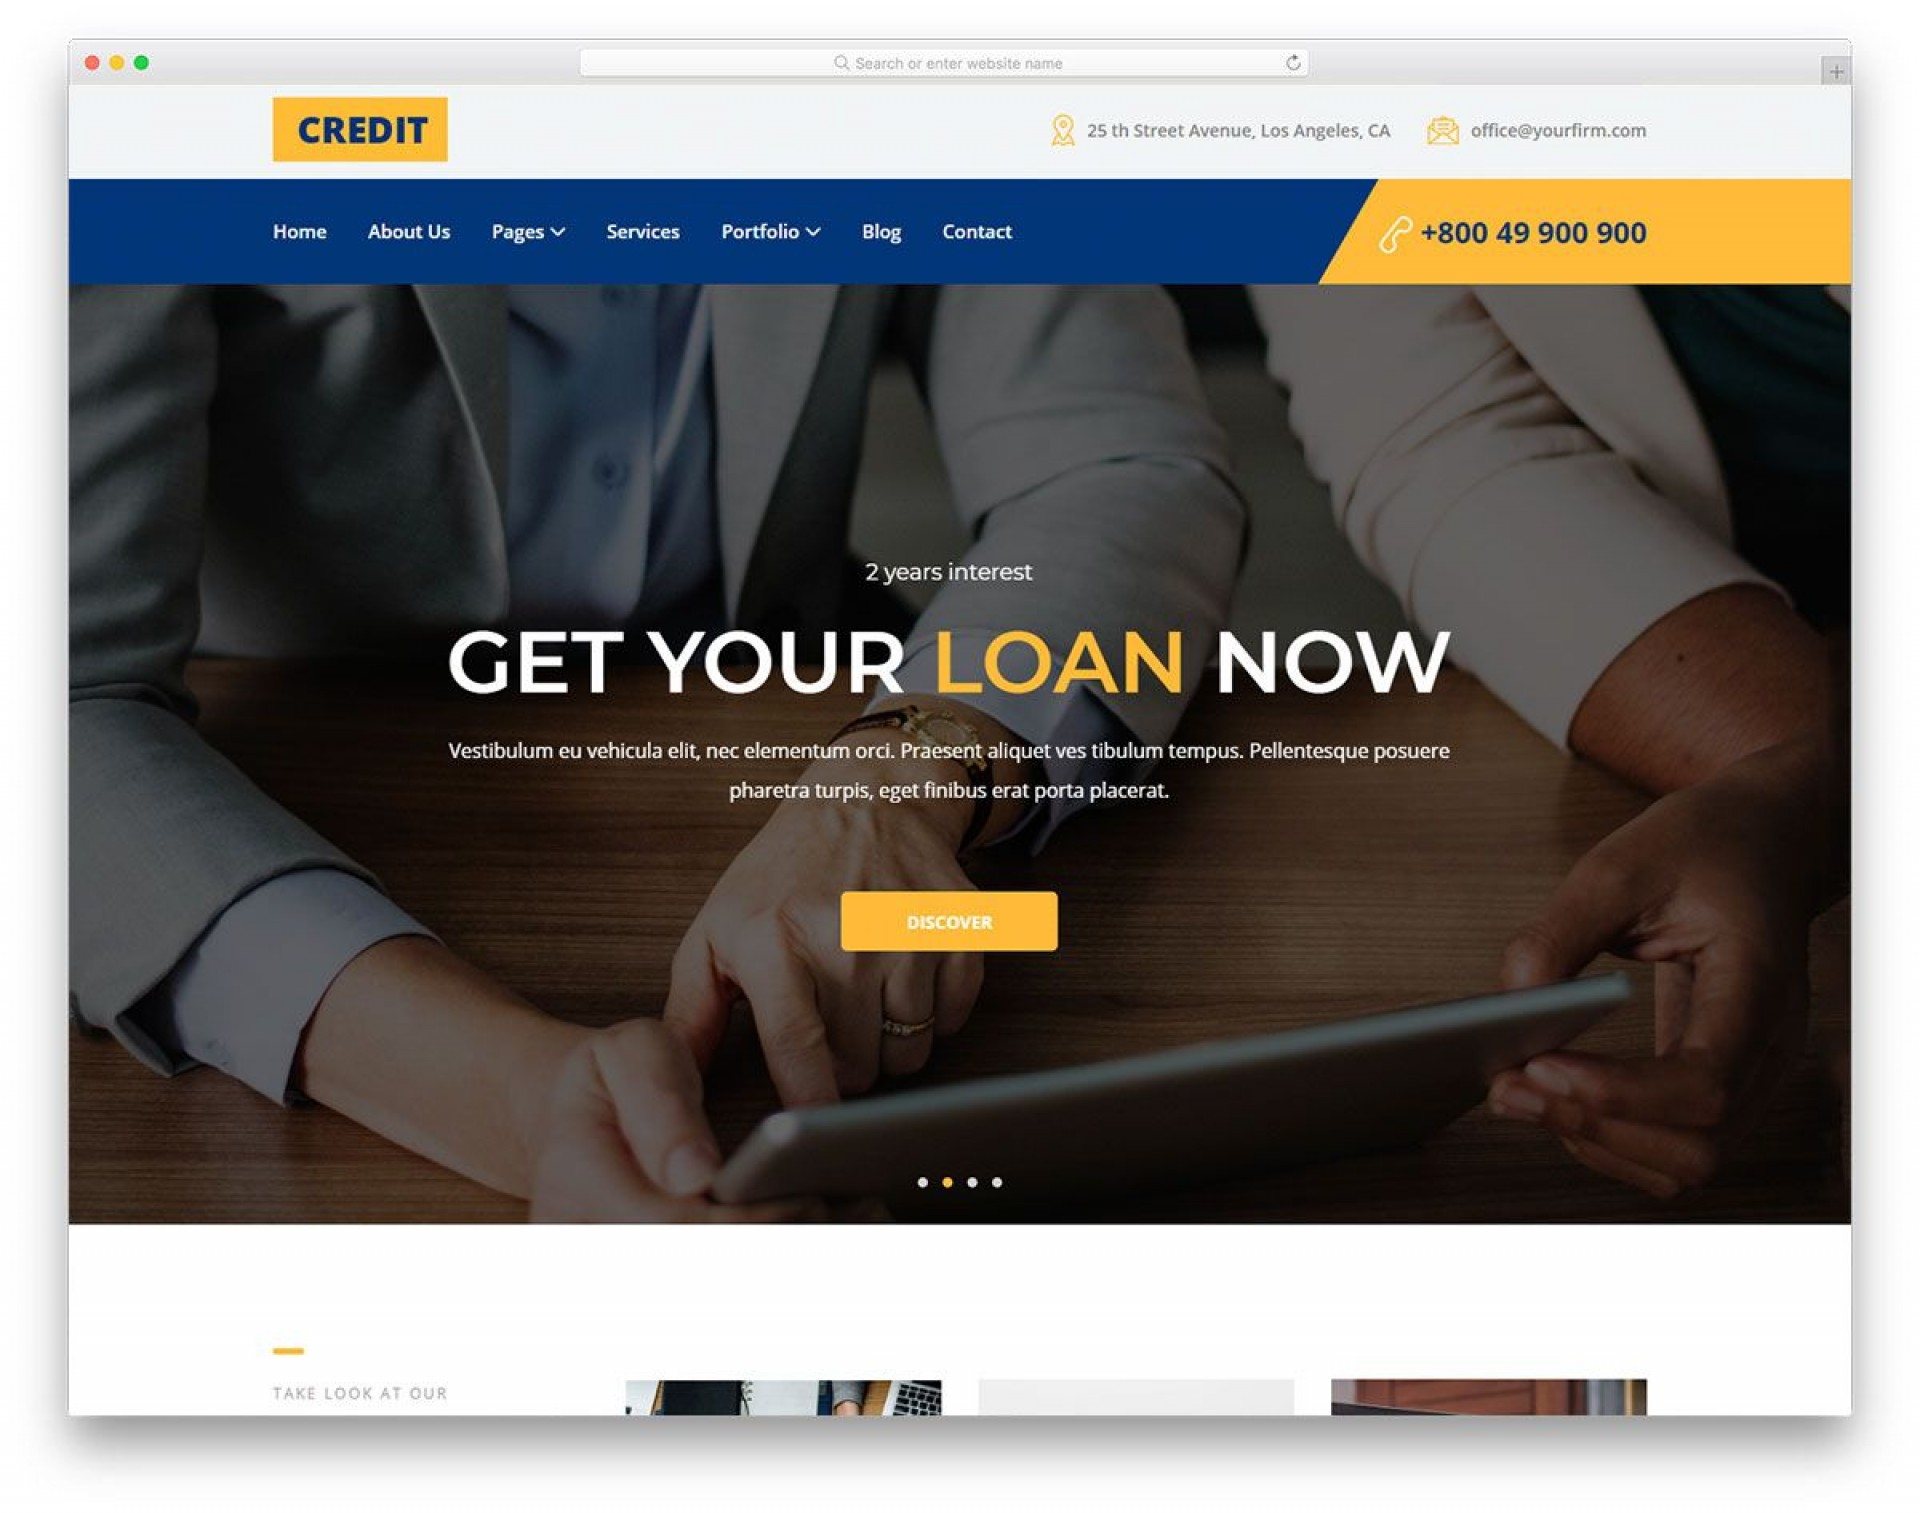 001 Top Project Management Website Template Free Download High Def  Software1920